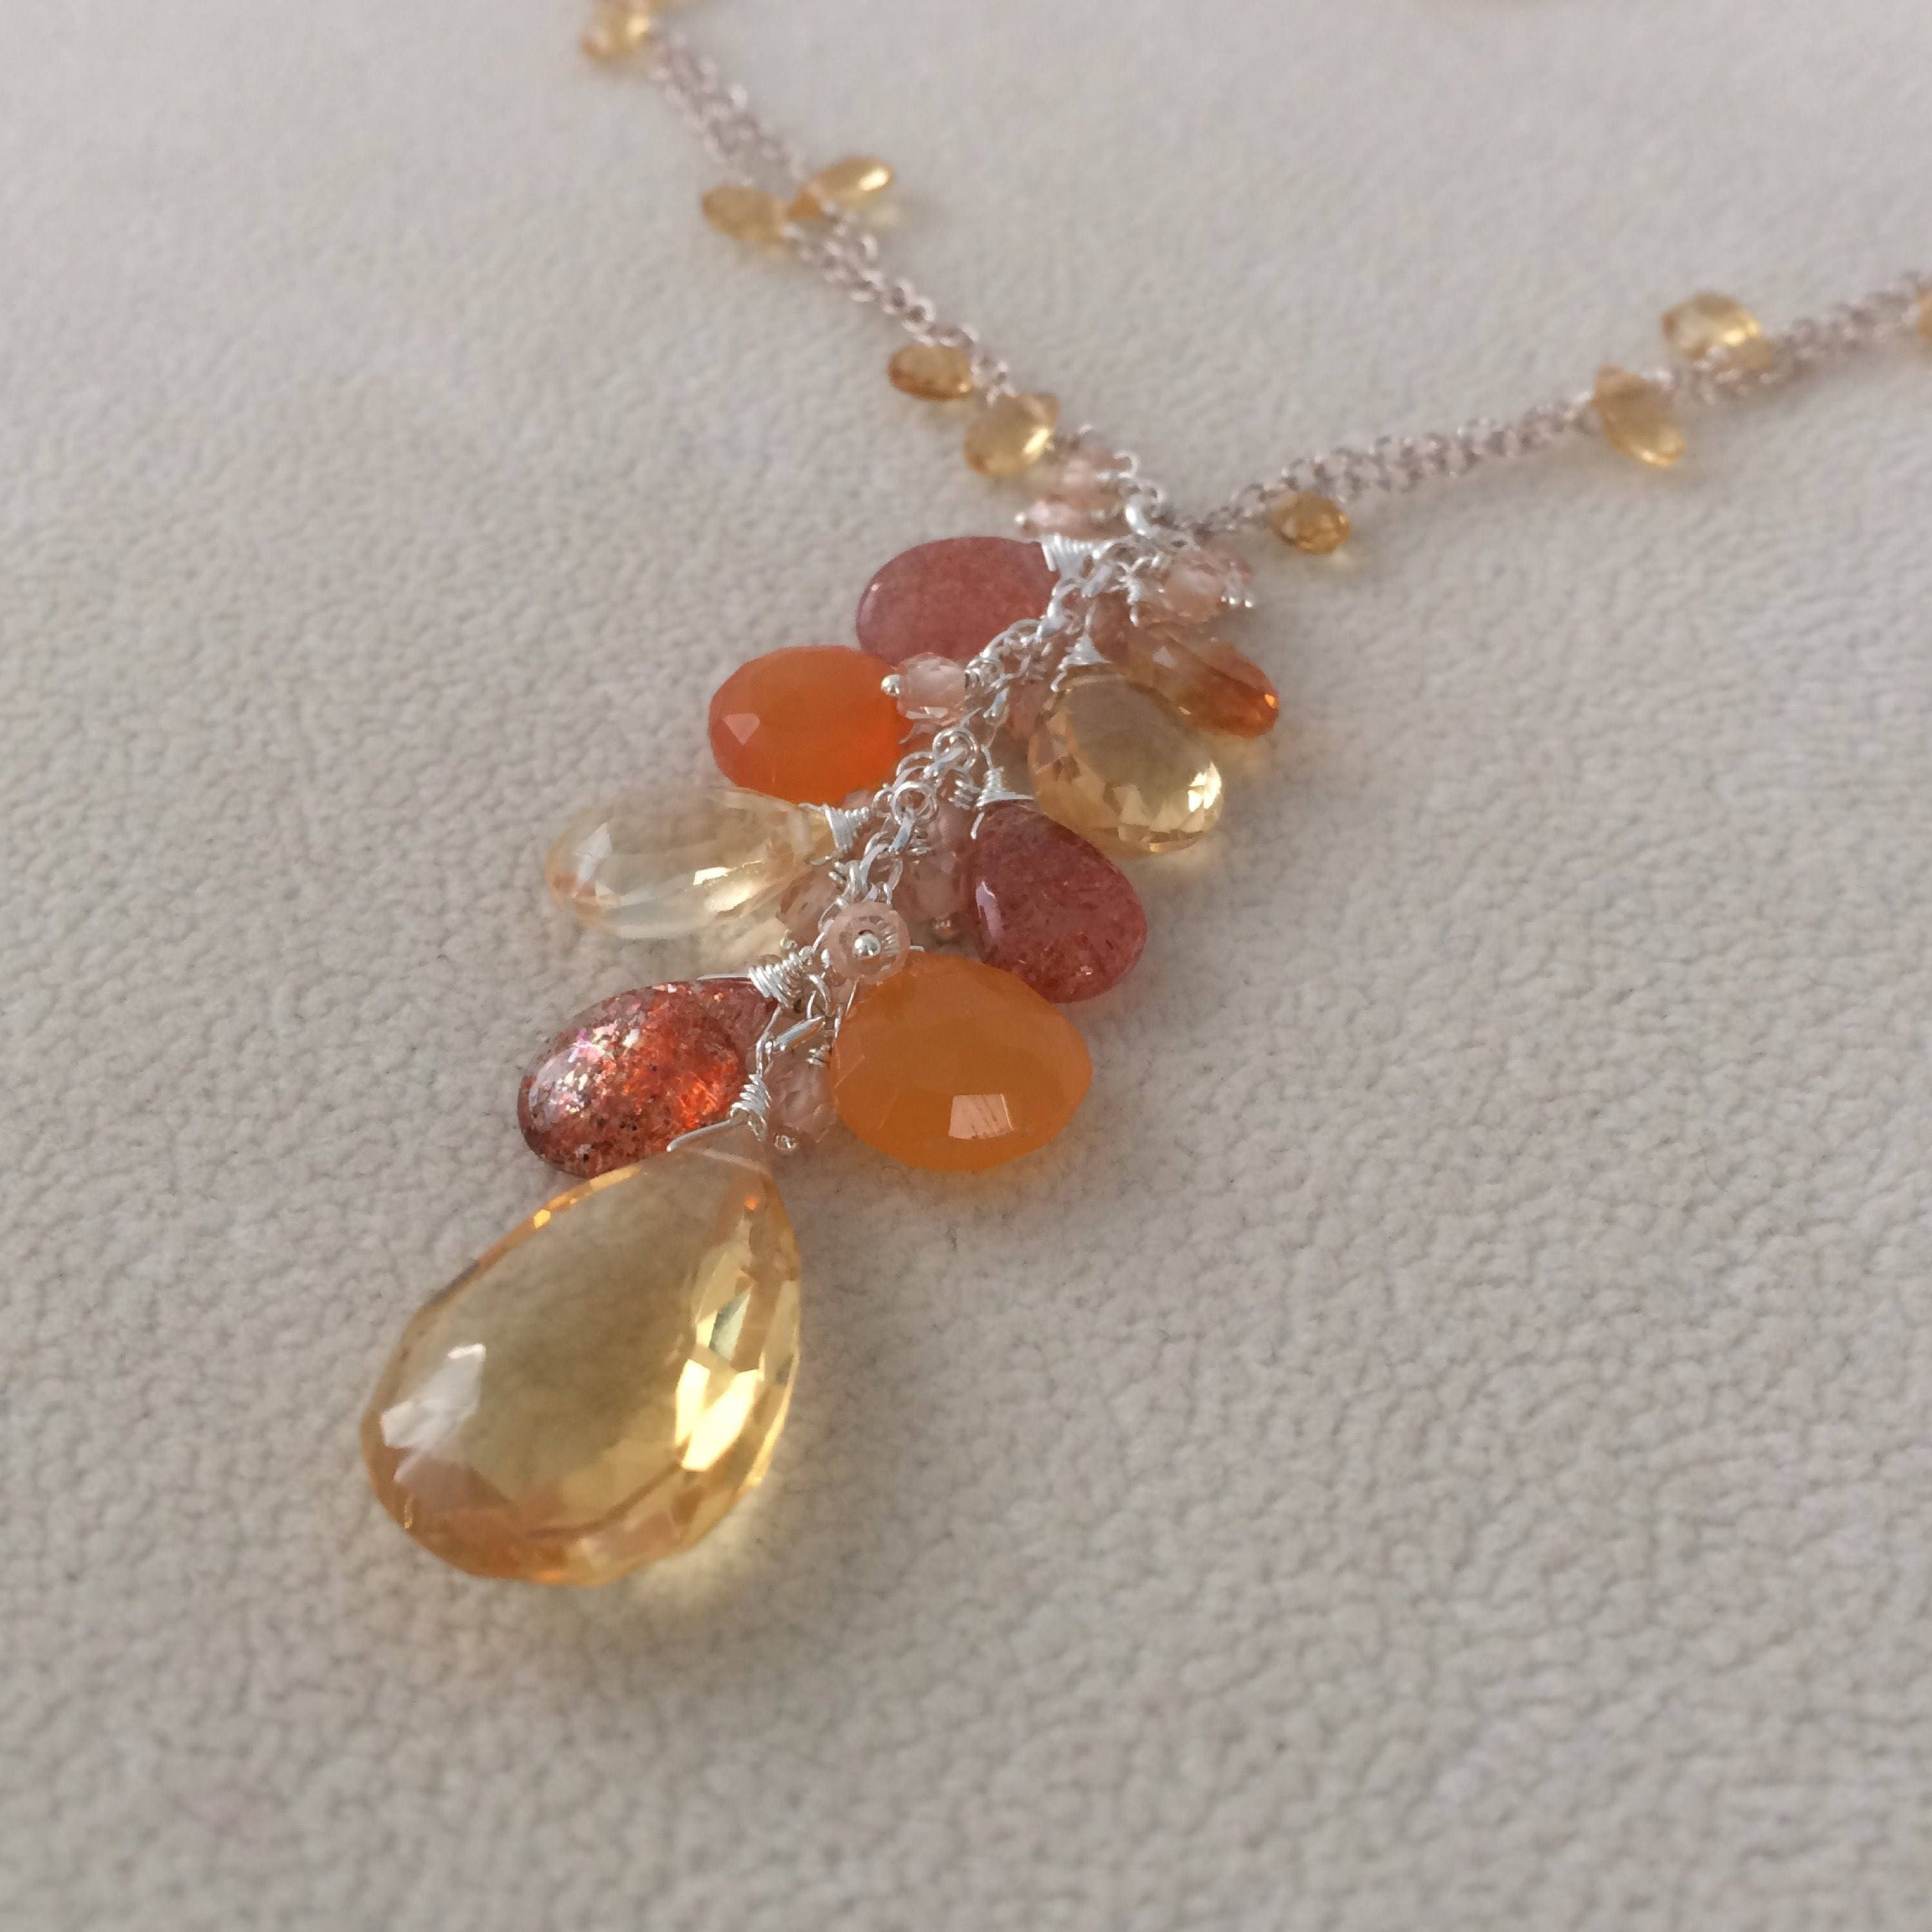 sunstone oval pendant pendants en